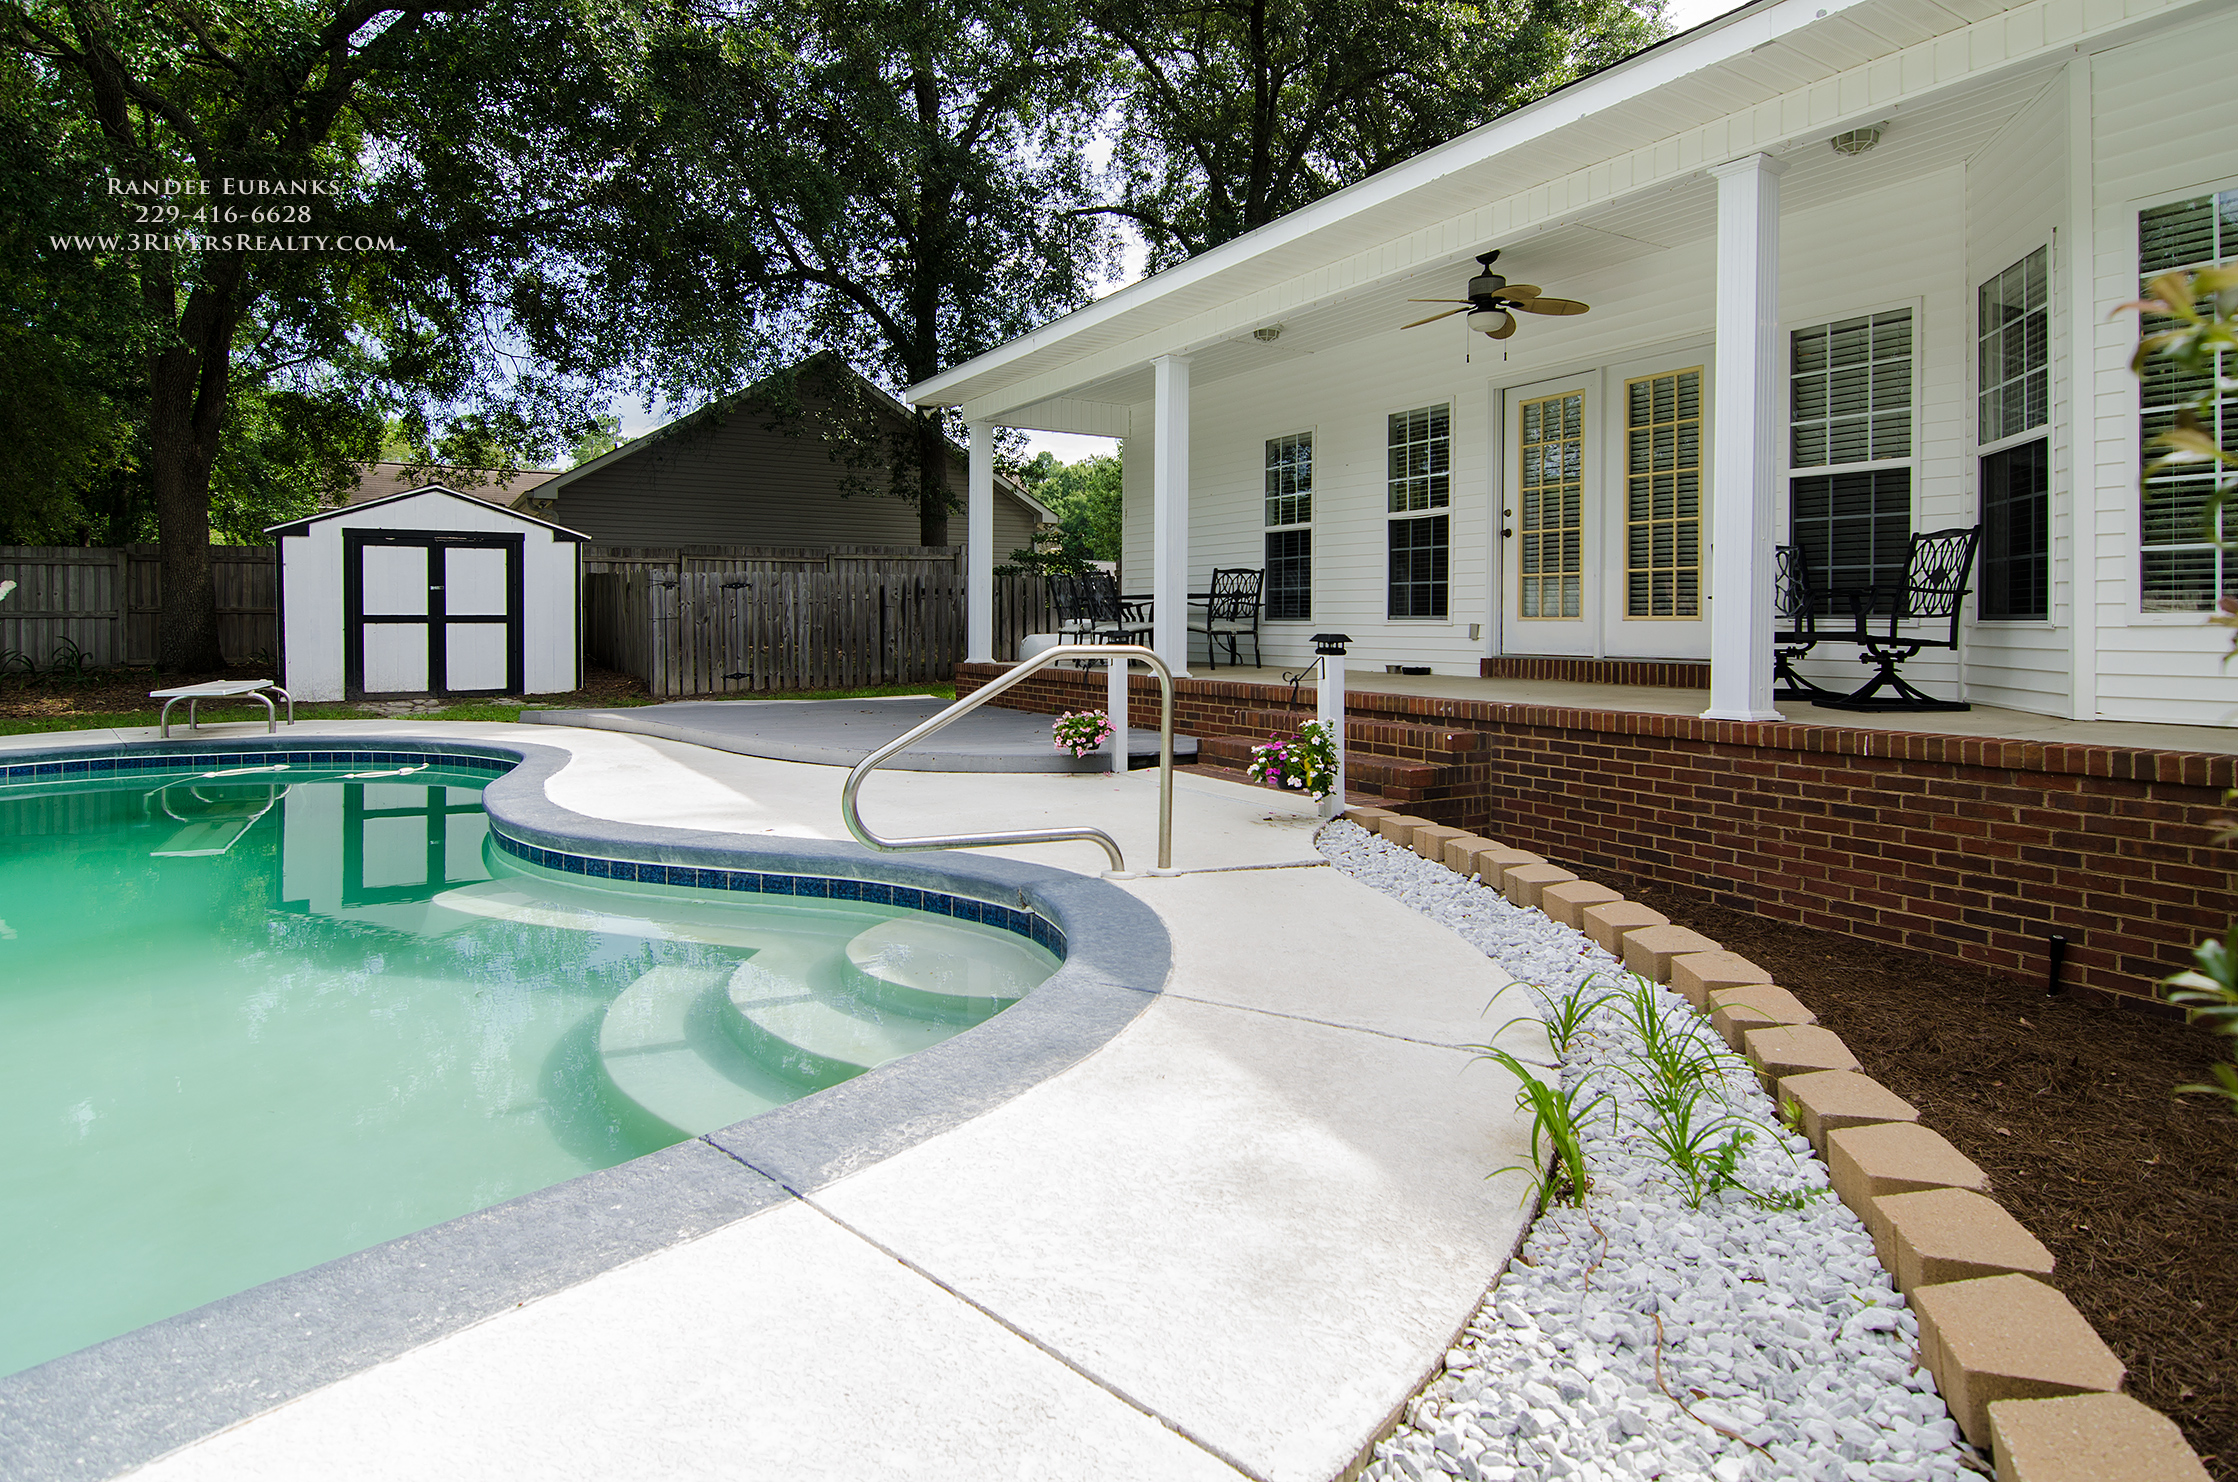 3riversrealty_bainbridge-georgia-home-for-sale_3-bed-2-bath_fireplace_three-rivers-realty_TaurusUSA_pool_back-porch_back-deck,pool.jpg